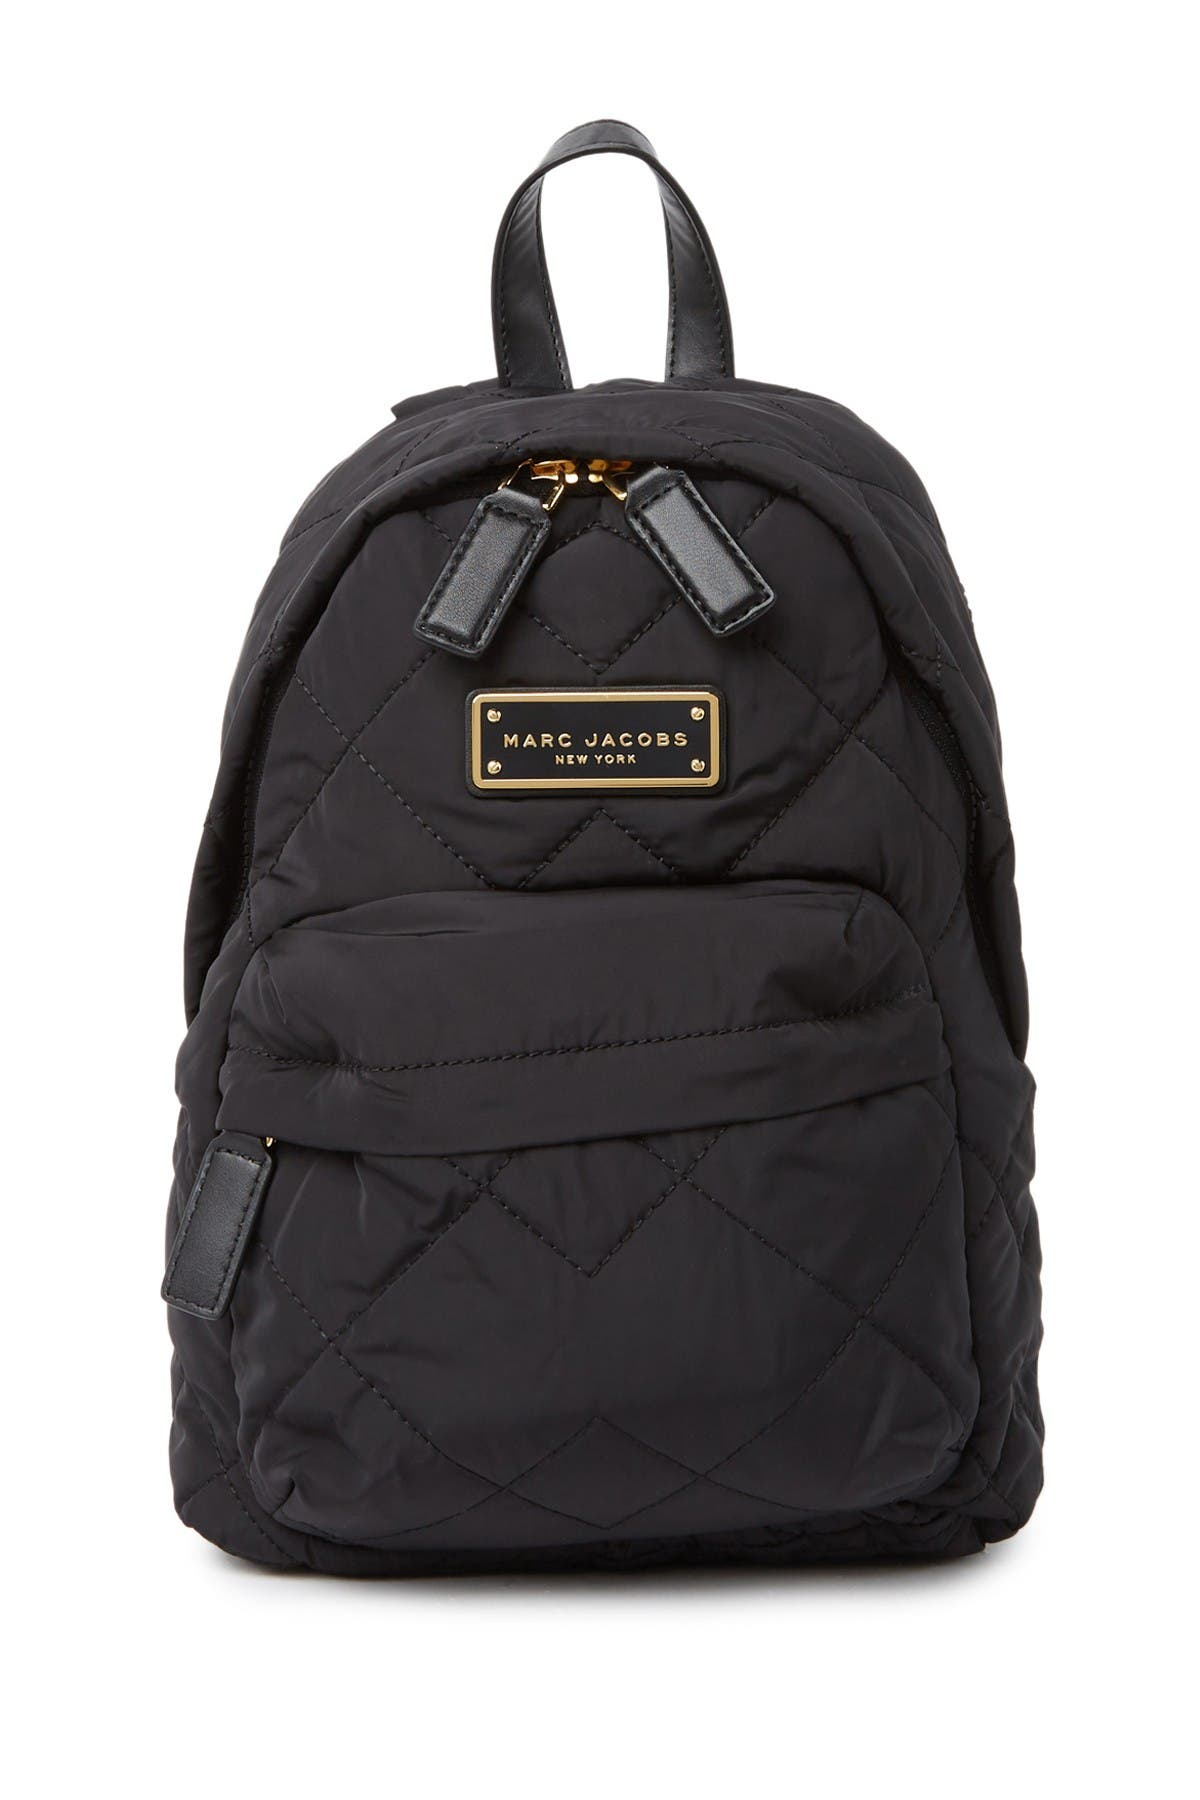 Image of Marc Jacobs Quilted Nylon Mini Backpack